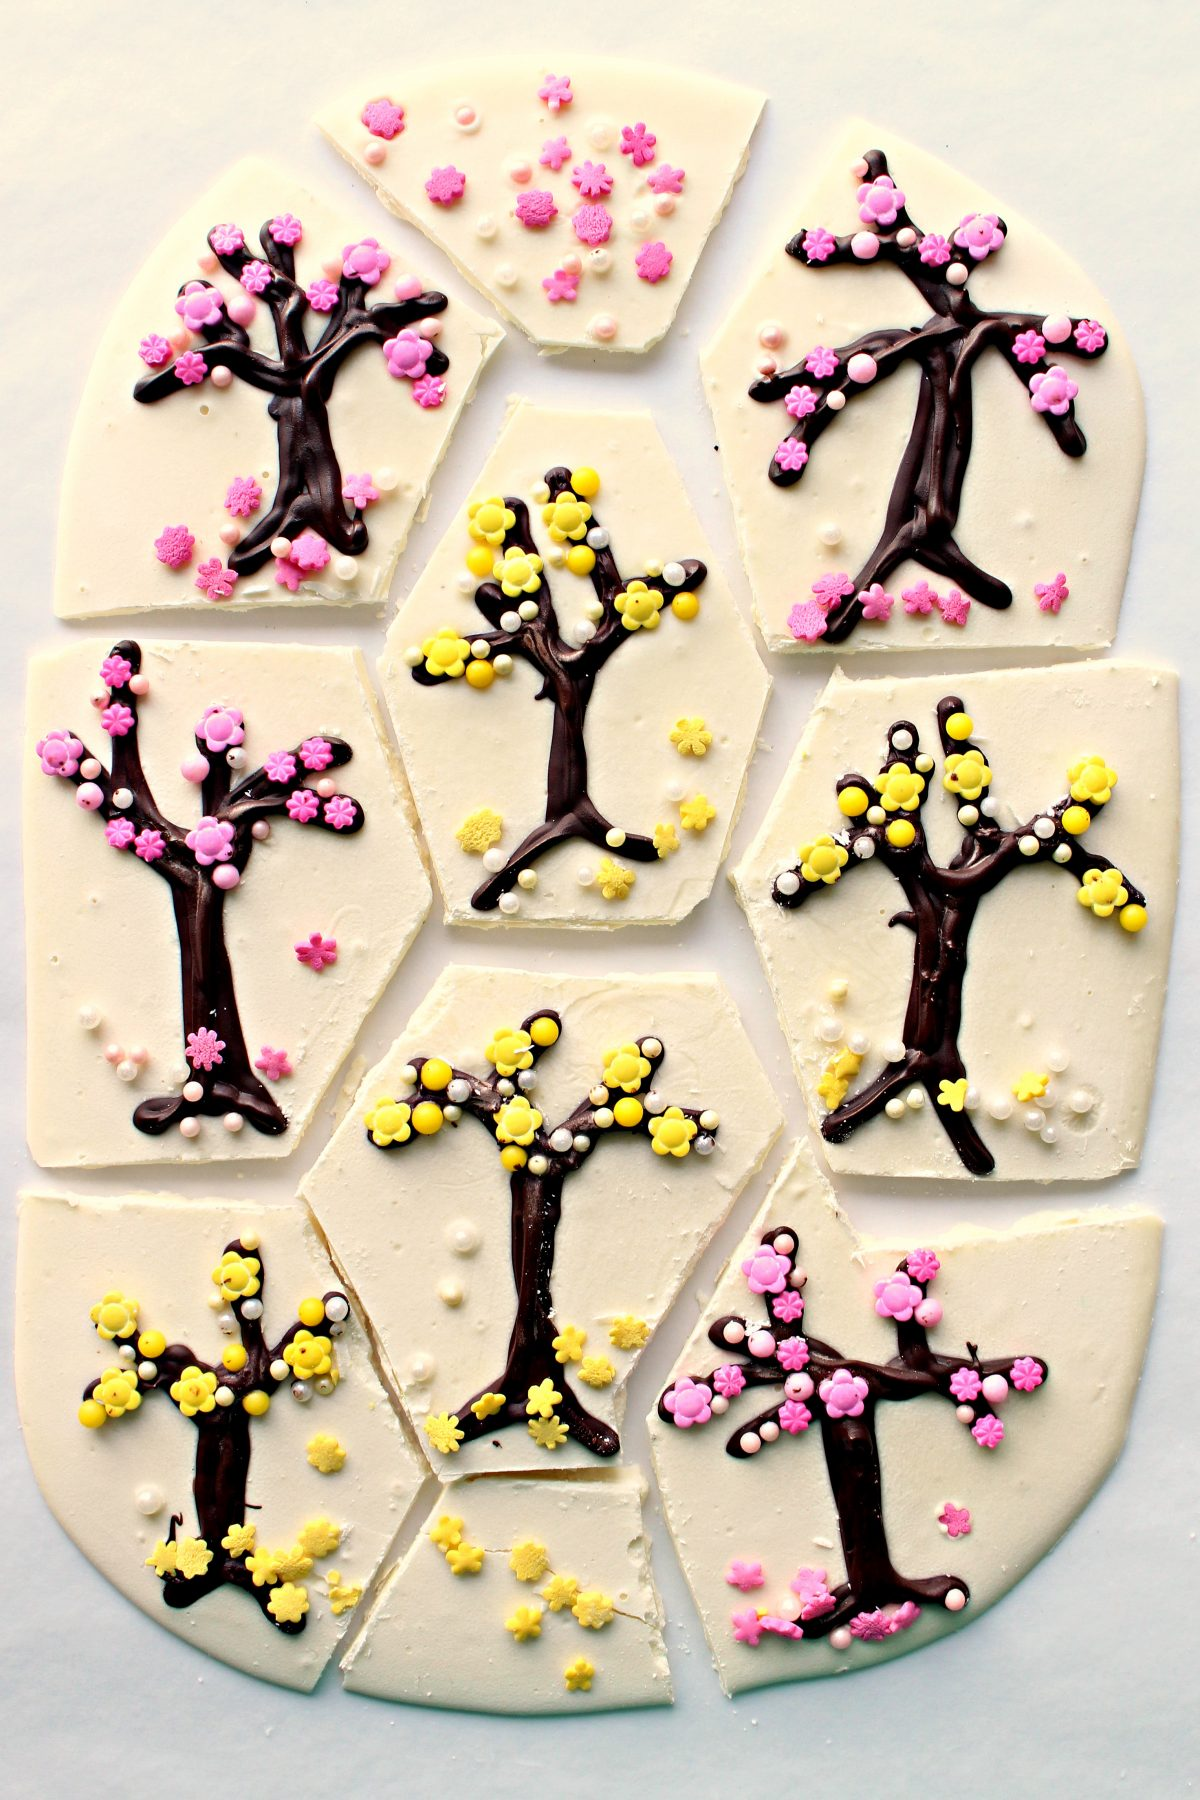 Chocolate Bark cut into pieces so that each serving includes one decorated tree design.